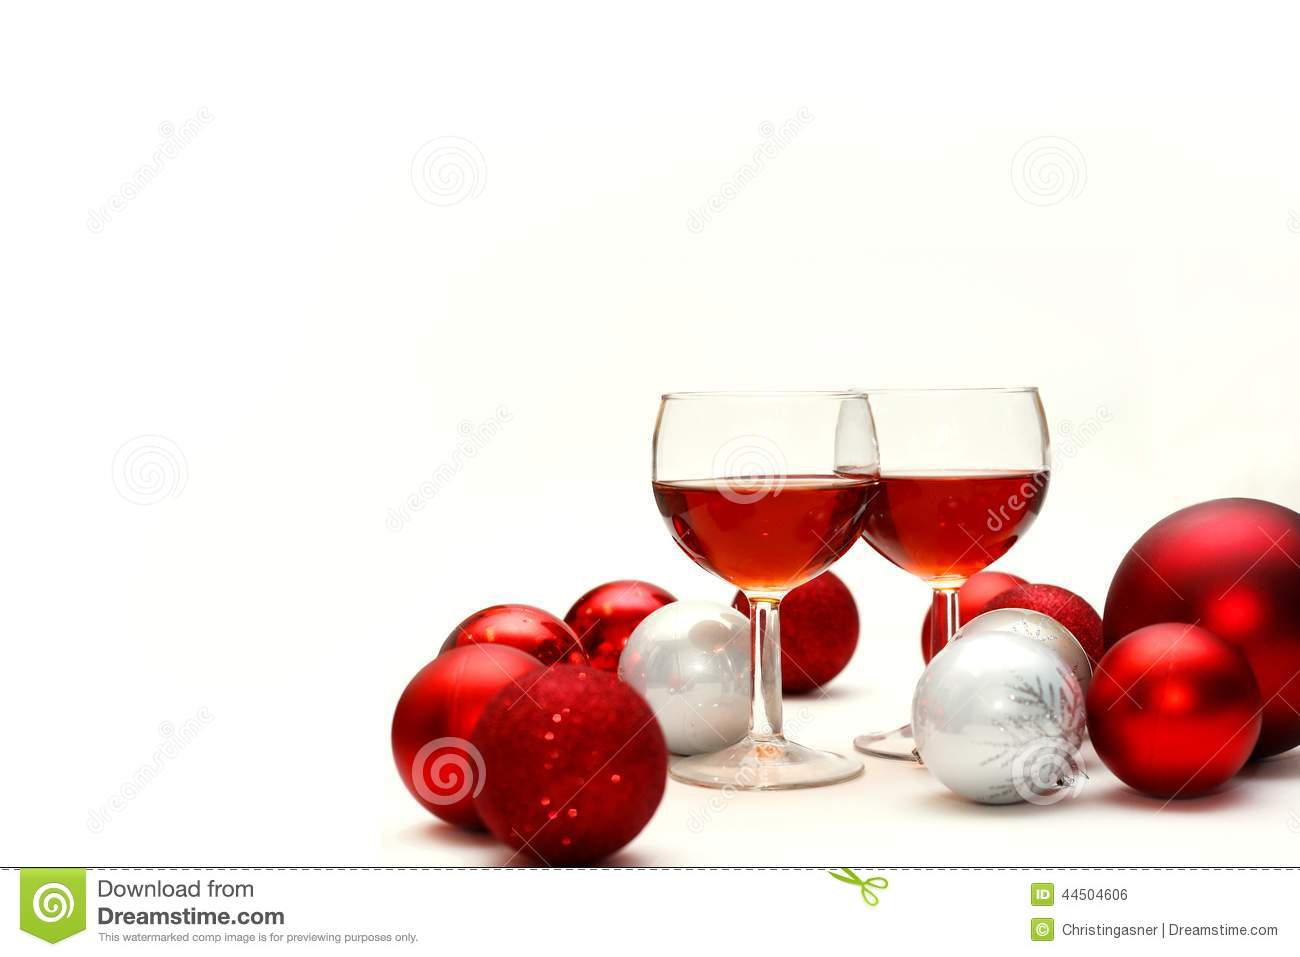 Red and white christmas decorations - Background Card Christmas Decorations Glasses Greeting Isolated Red Silver White